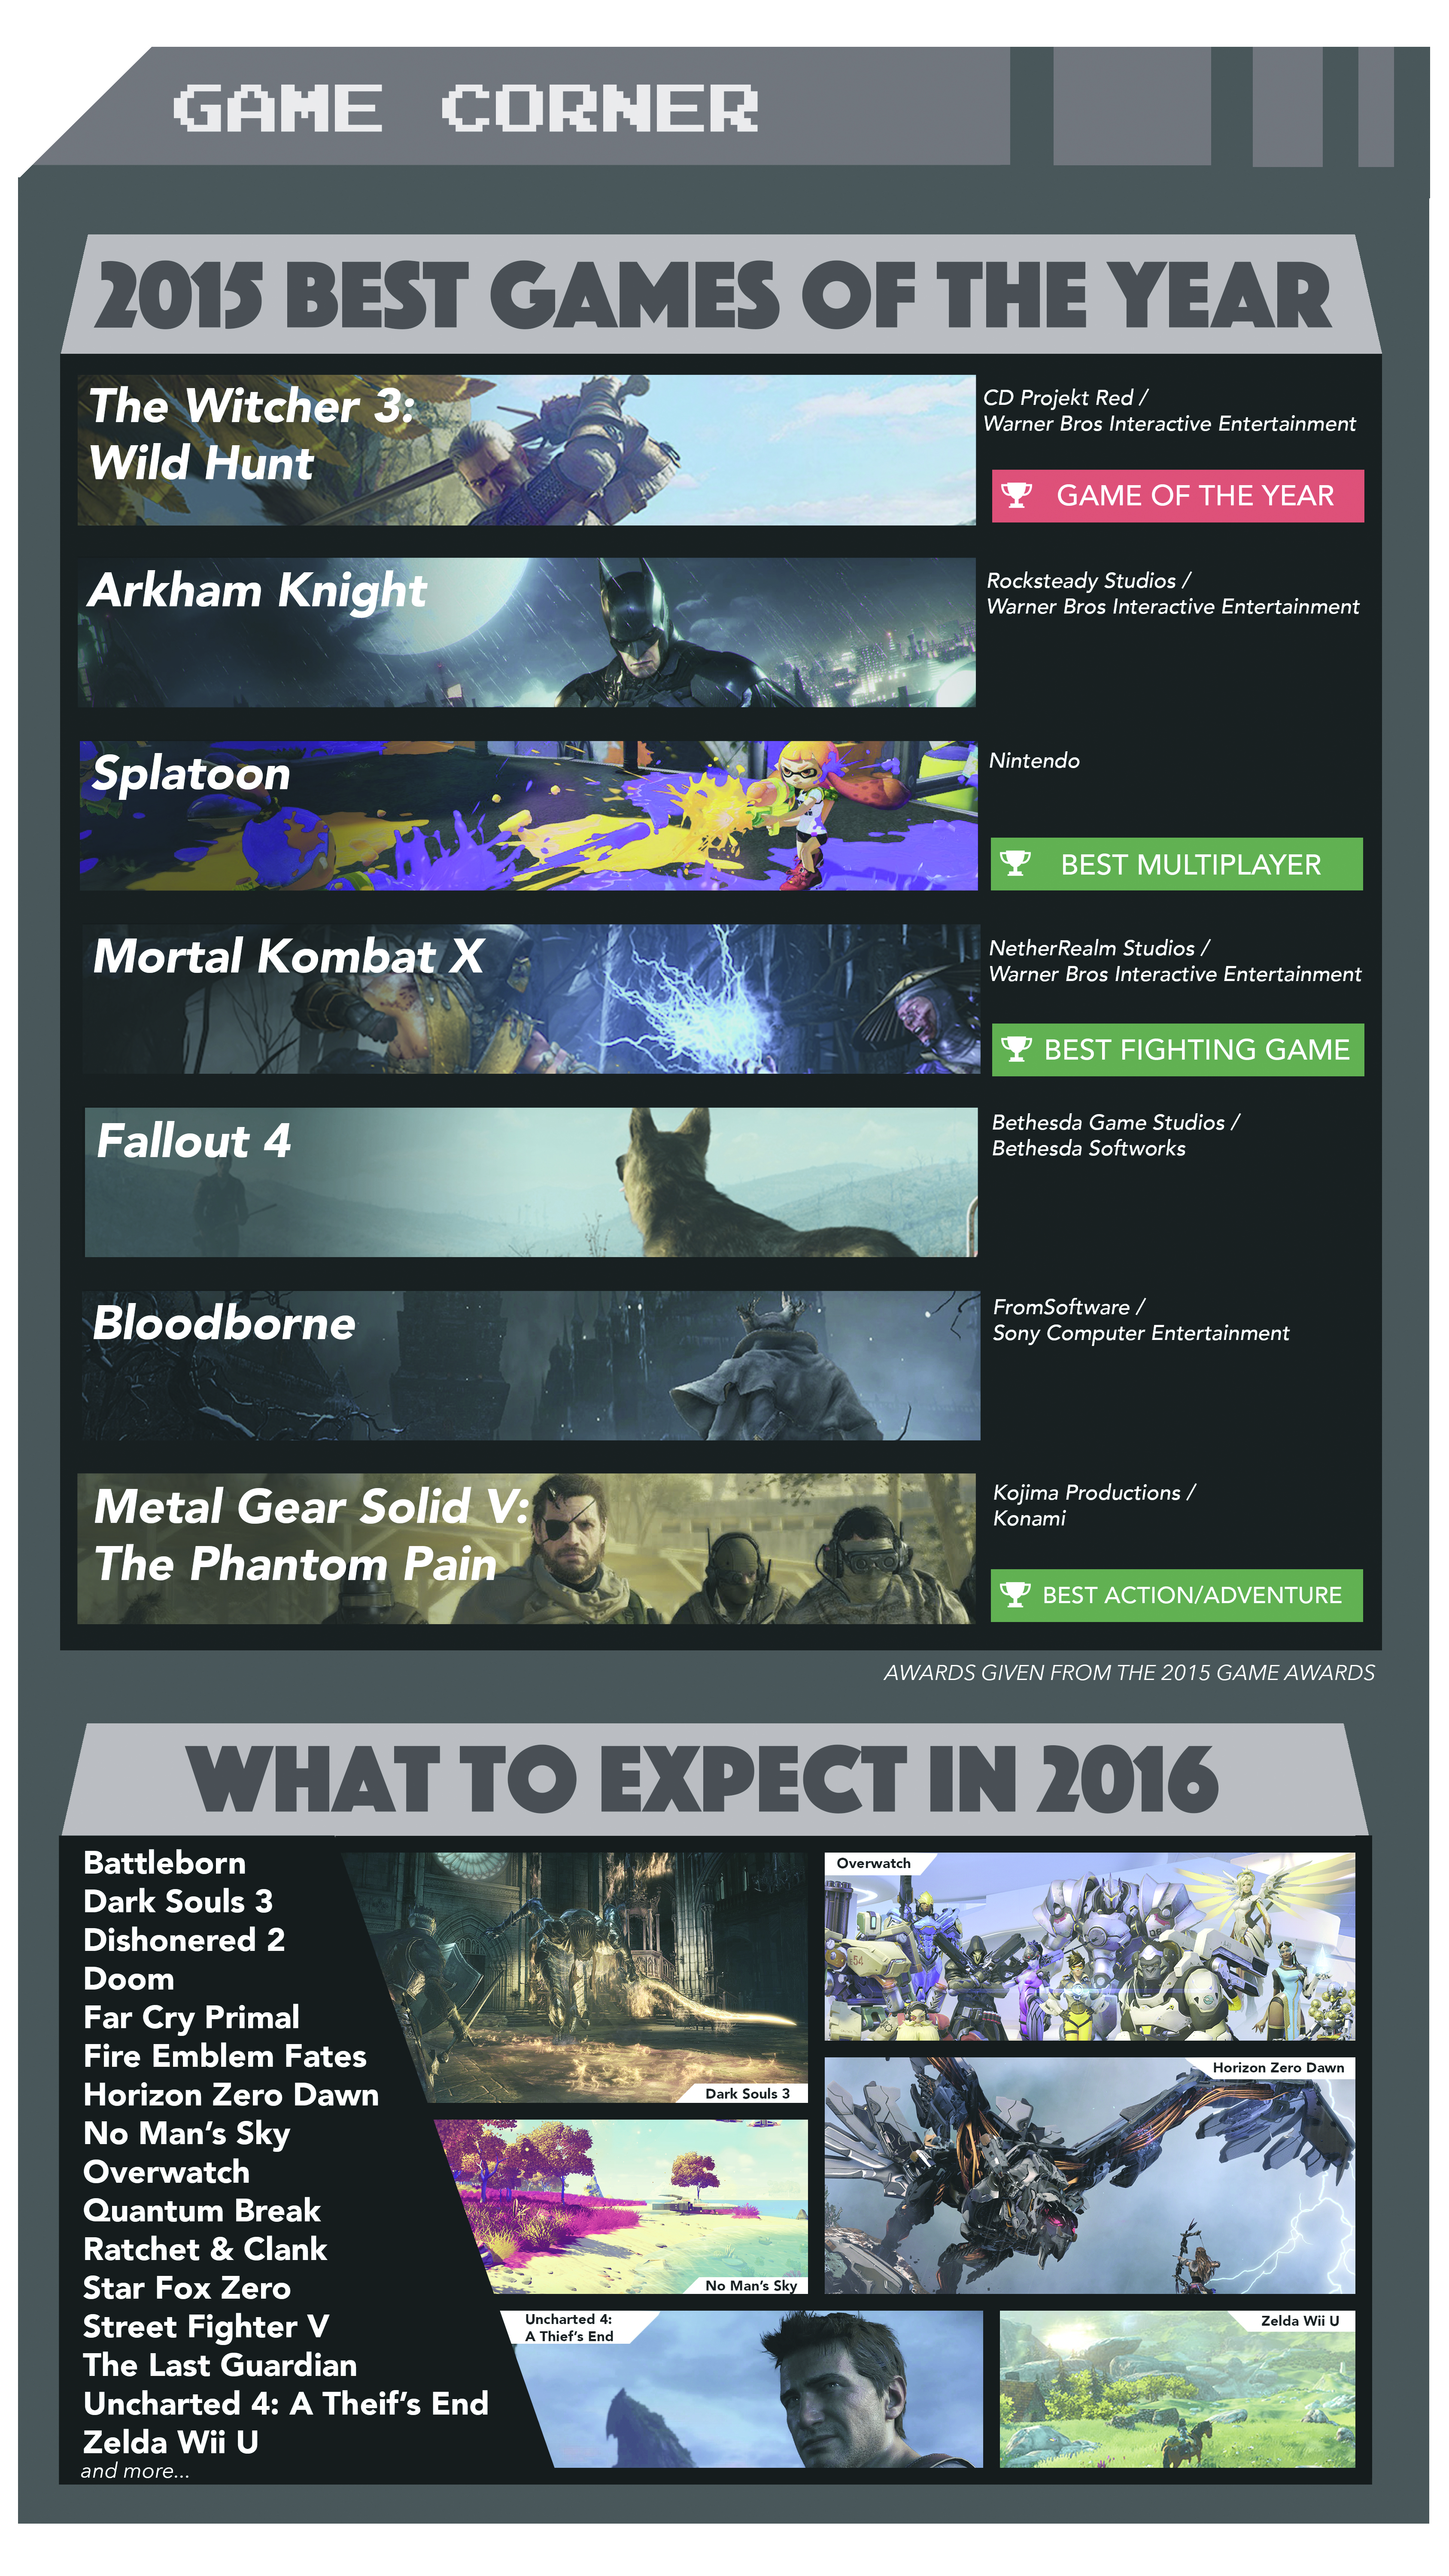 Game Corner: 2015 Best Games of the Year